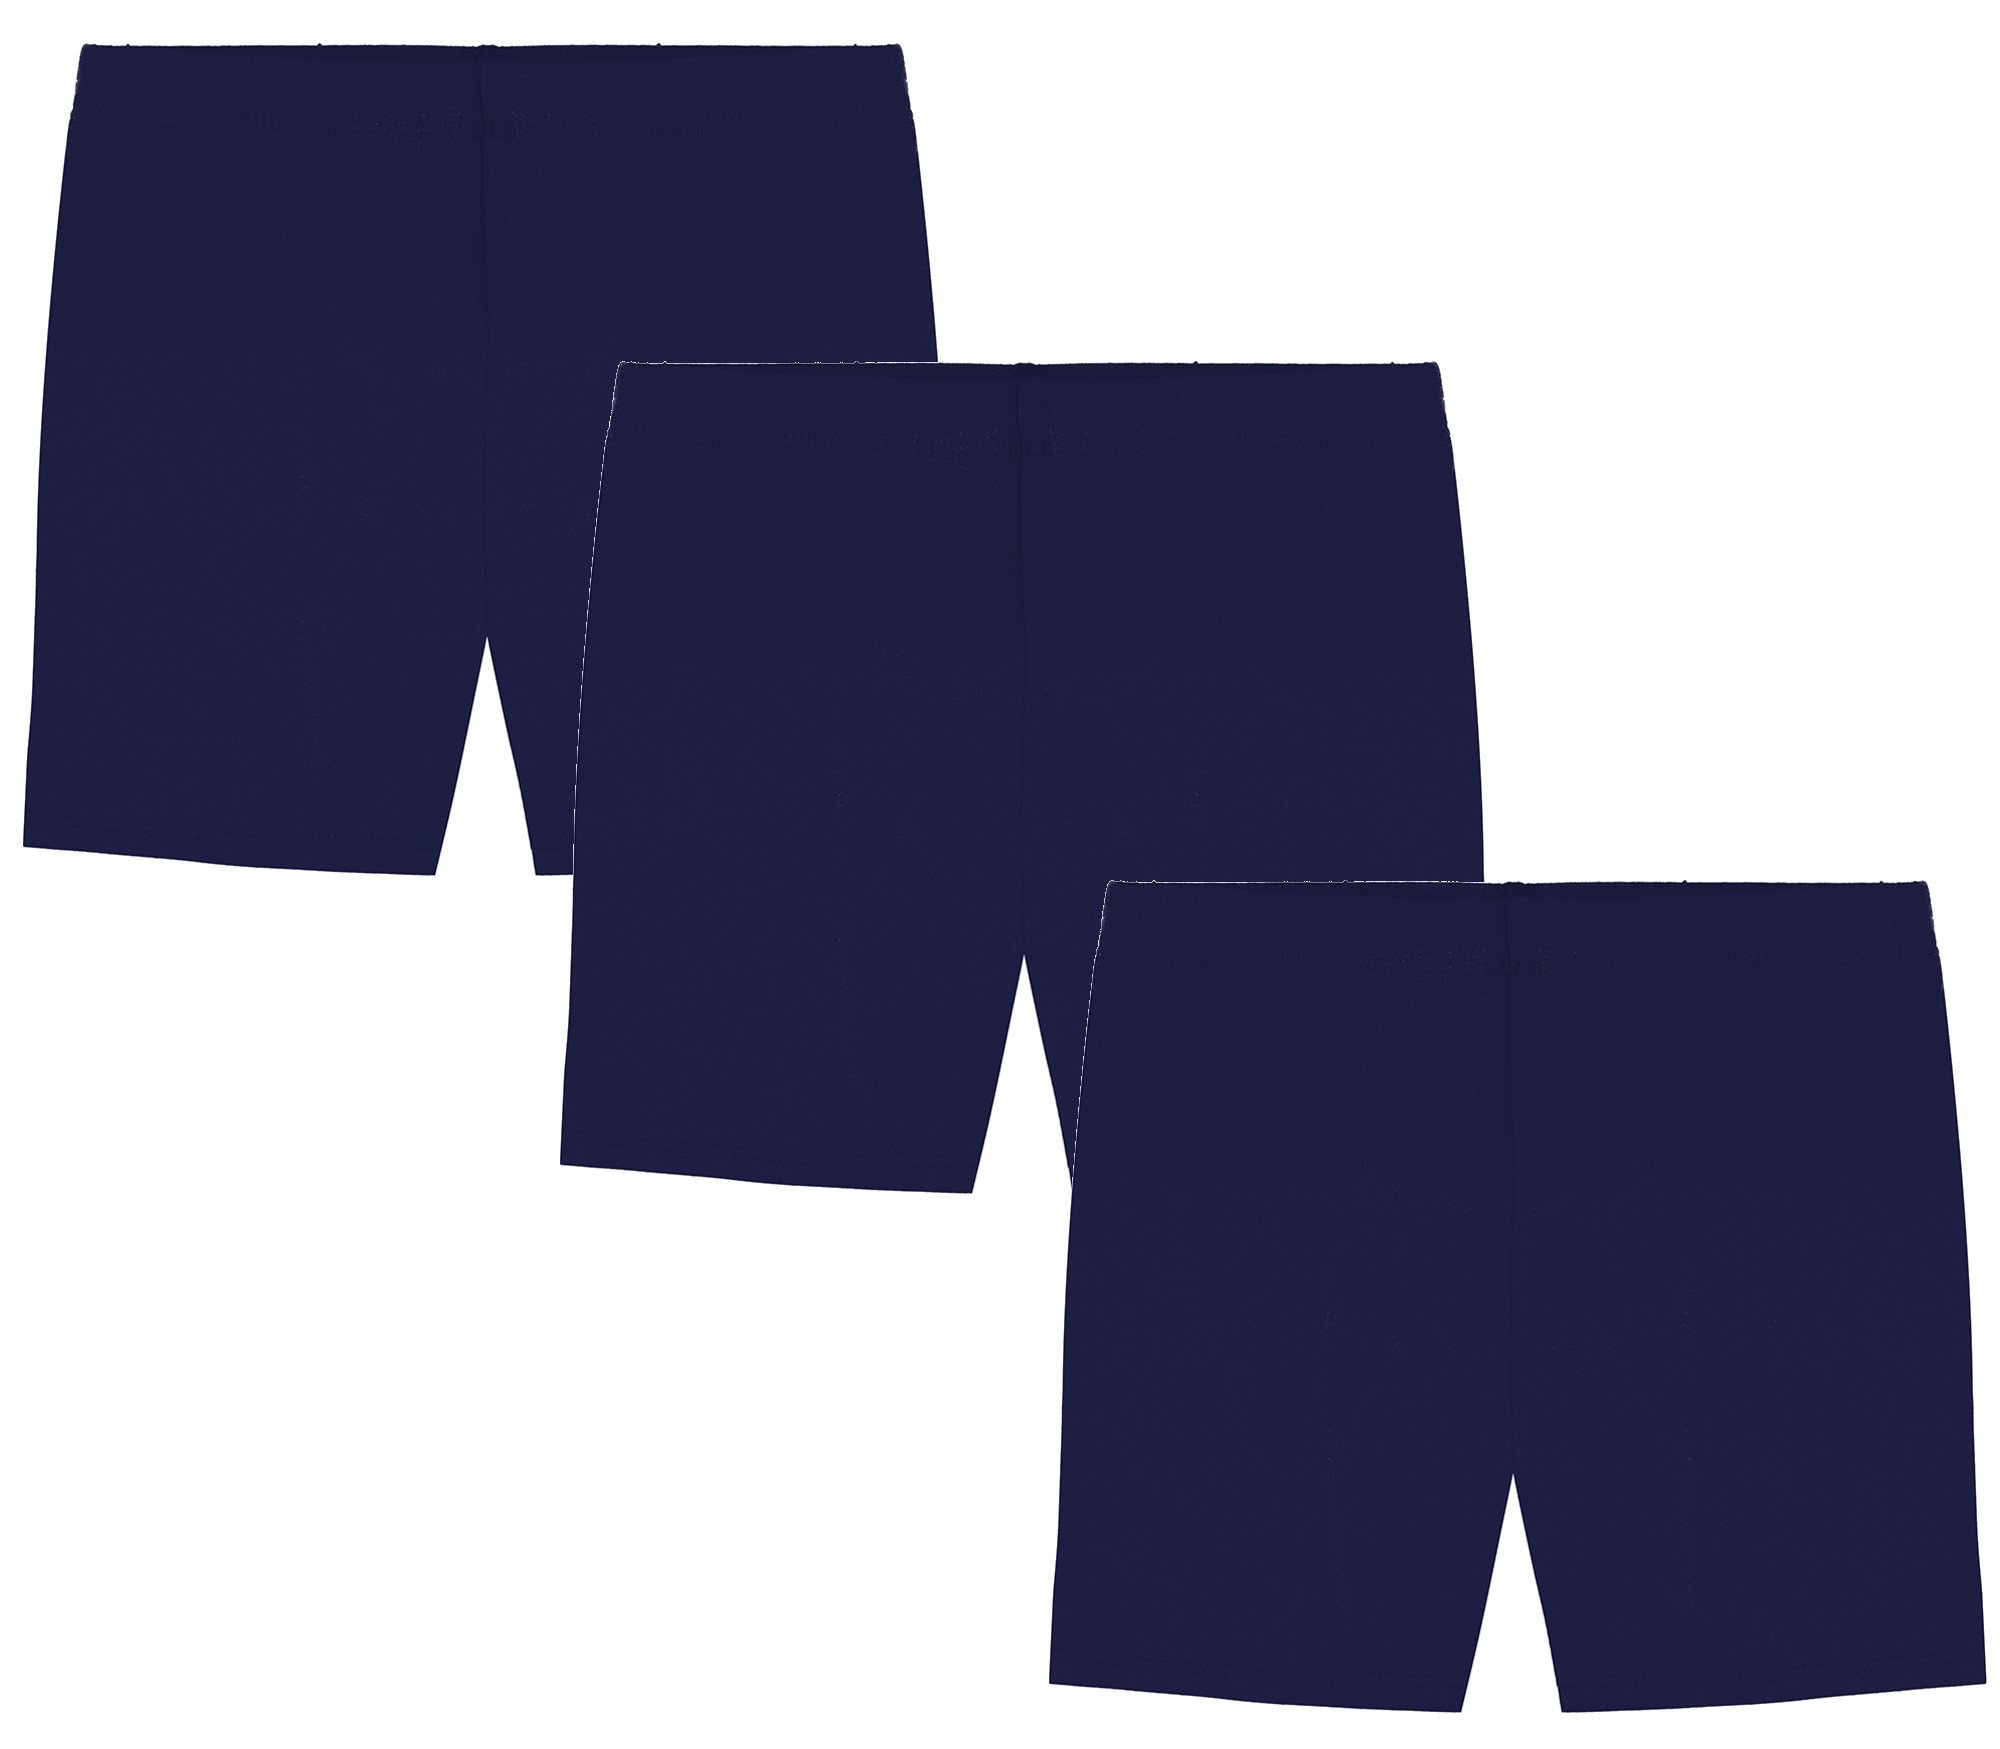 My Way Girls' Value Pack Solid Cotton Bike Shorts - All Navy - 4